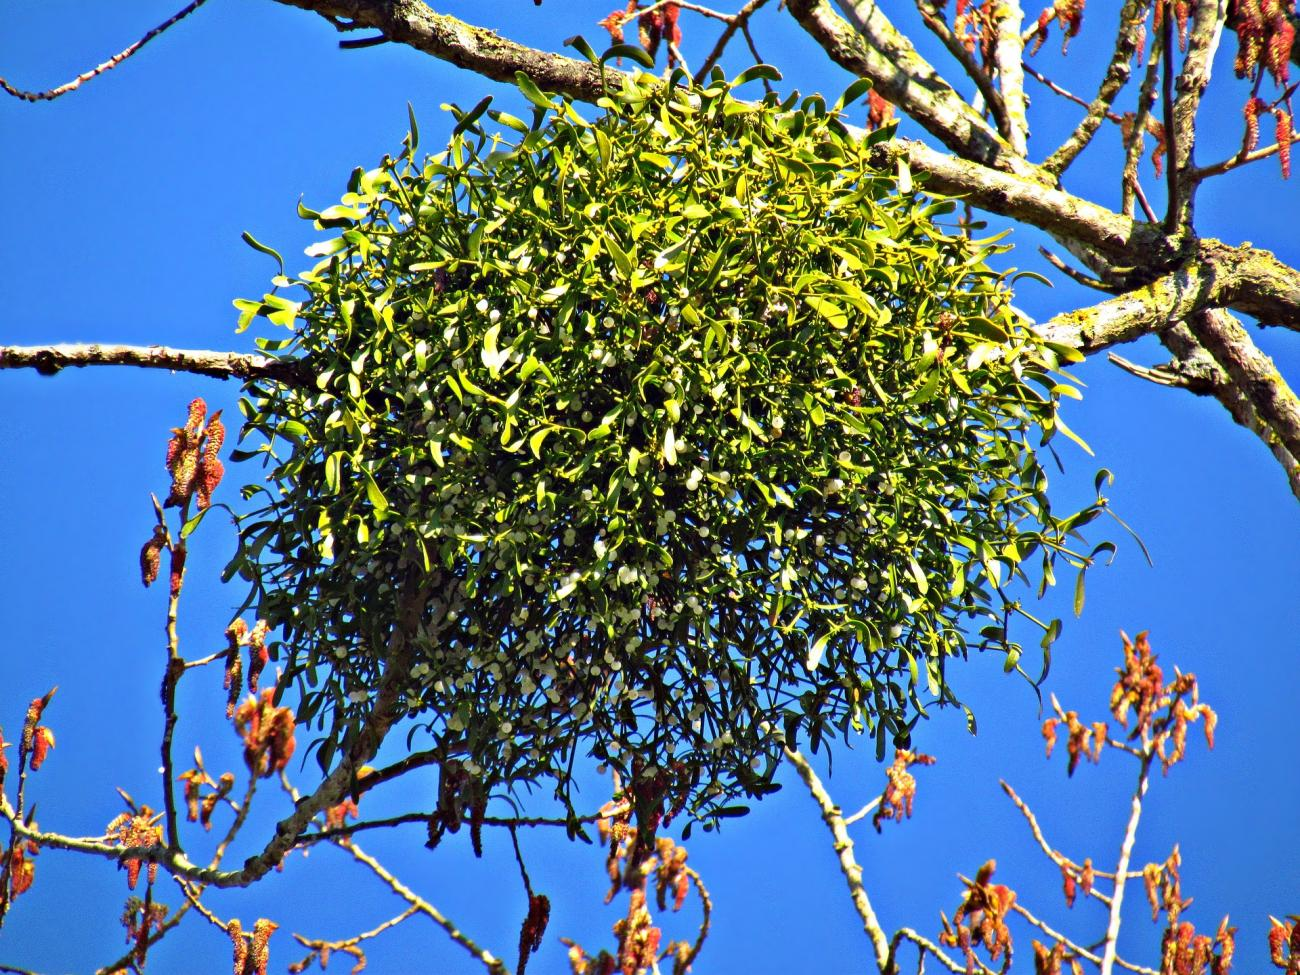 Mistletoe Meaning and Lore | Why We Kiss Beneath It